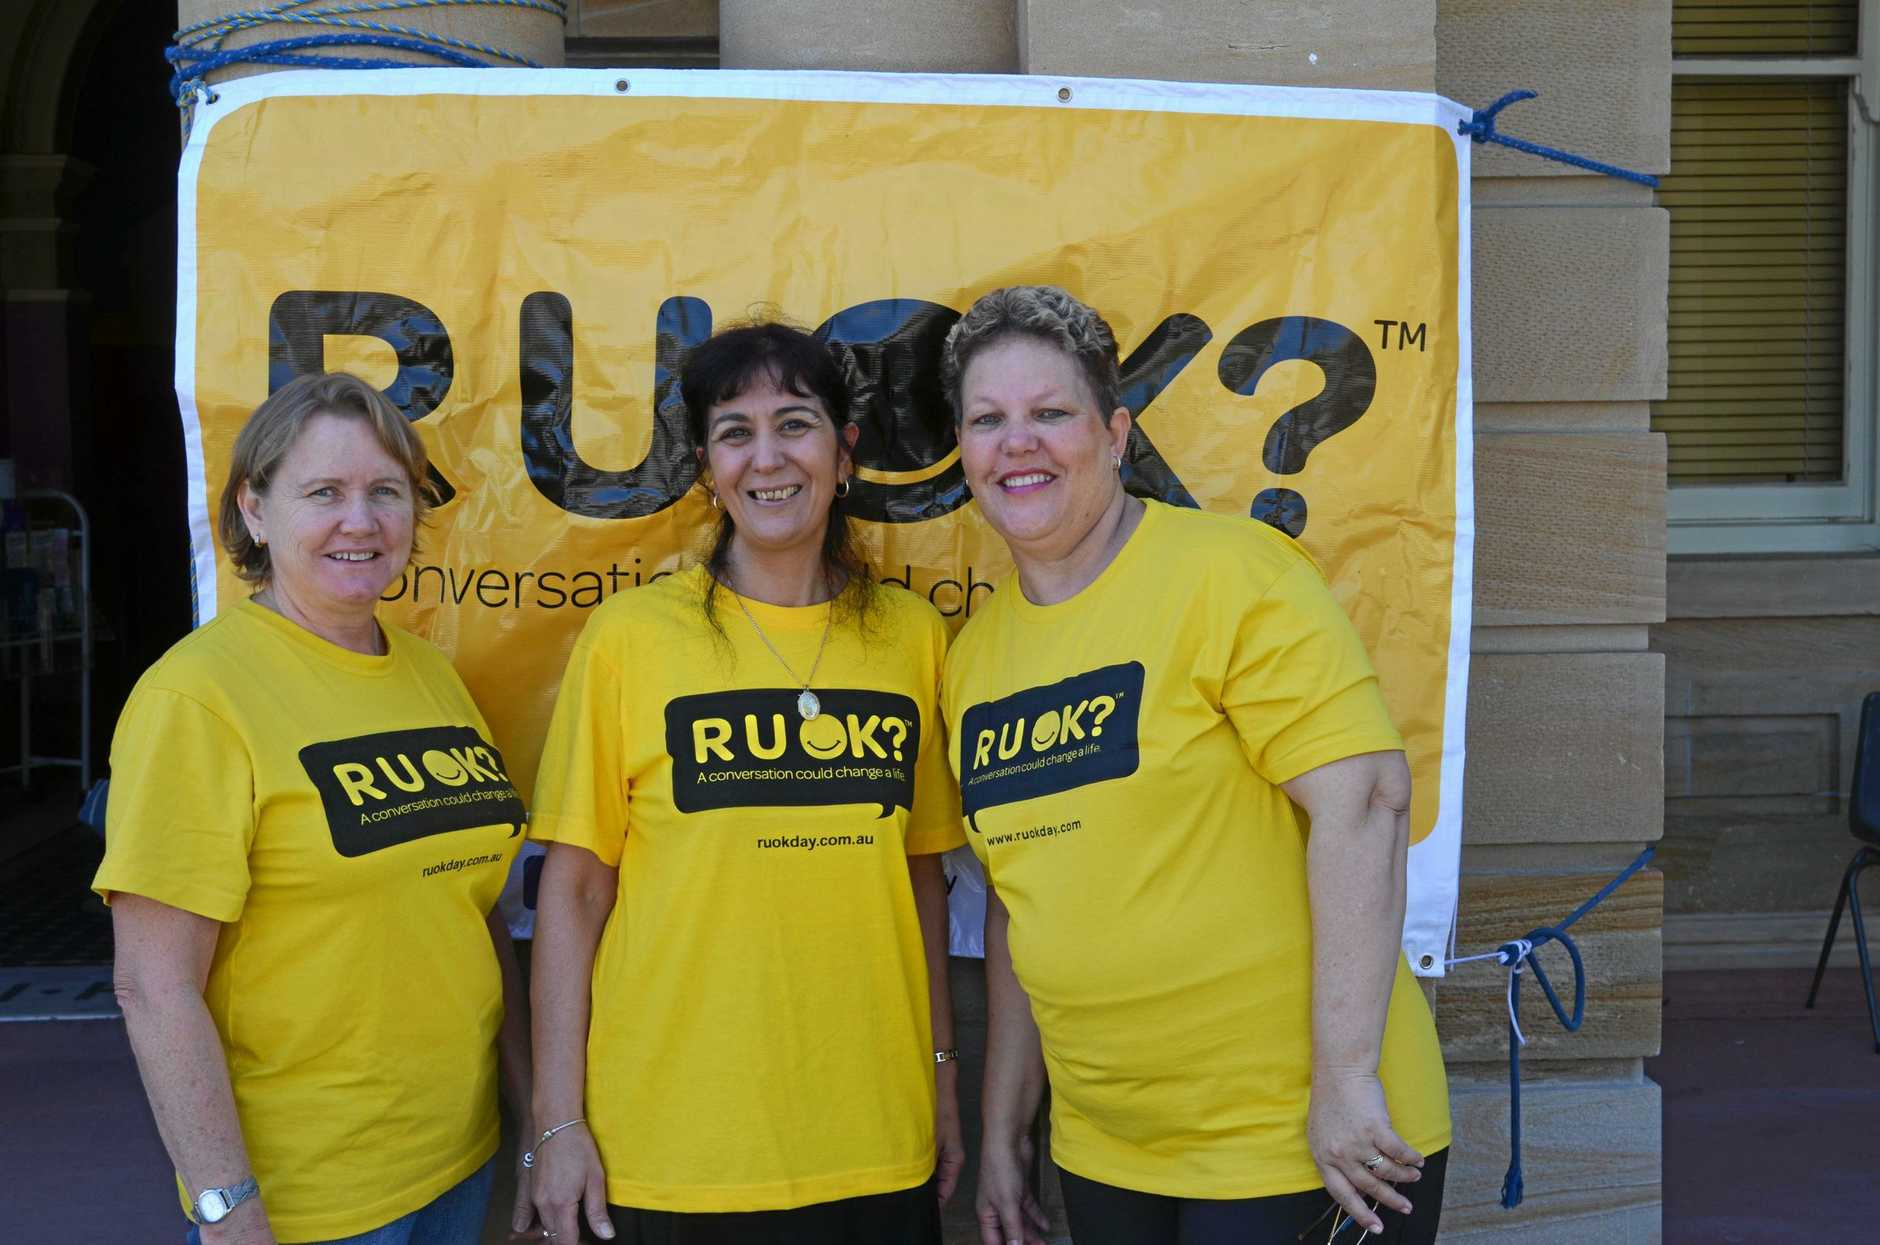 Ann Felton, Valerie White and Marcelle Thompson help out at the R U OK stand in front of the Town Hall yesterday.  Photo Katie Cameron / Warwick Daily News